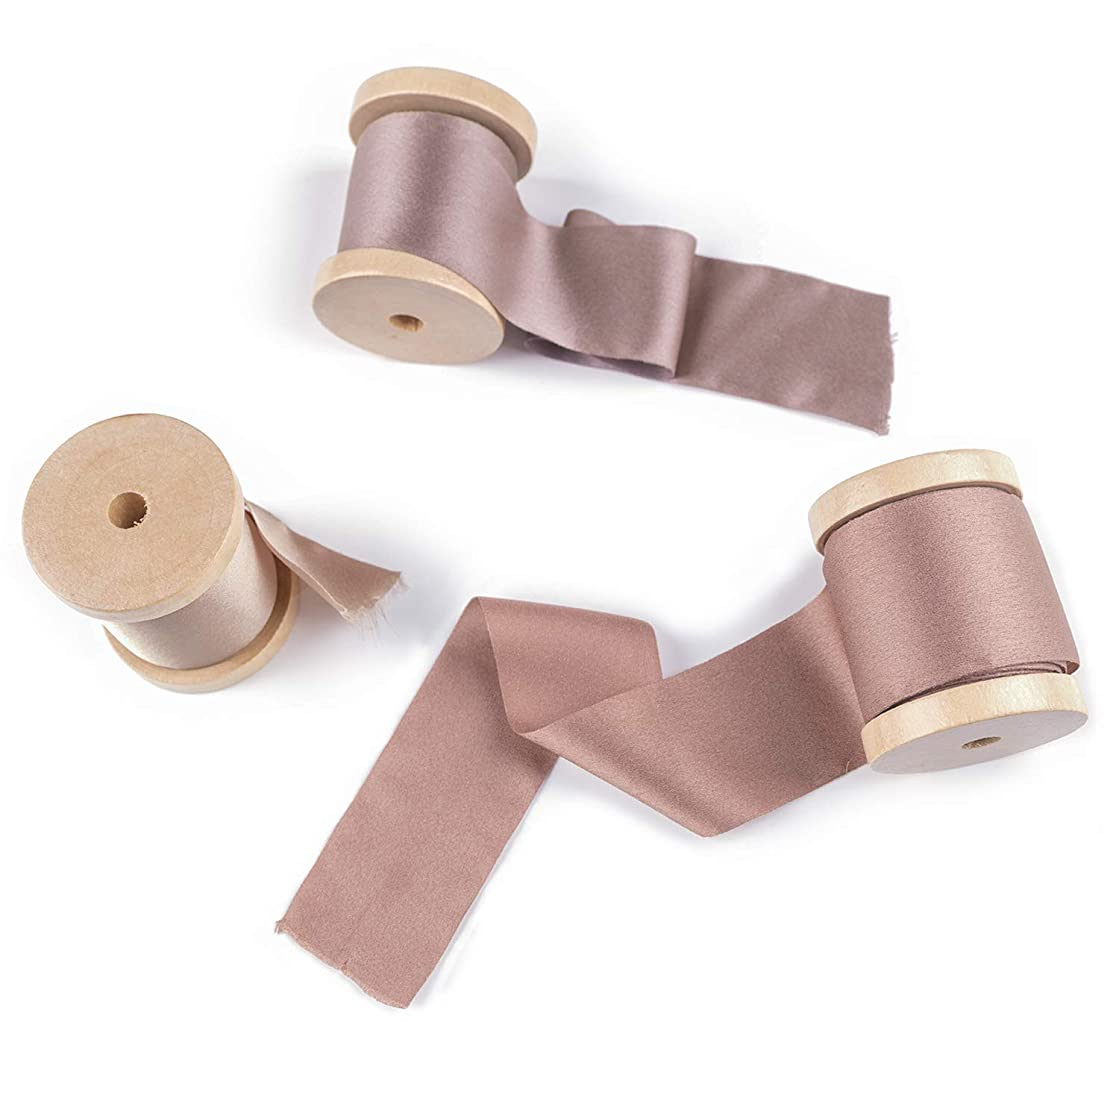 Ling's moment Handmade Sari Silk Ribbon with Spool Set of 3 Rolls Frayed Edges Ribbon for Wedding Bouquets Invitations Gift Wrapping Decor